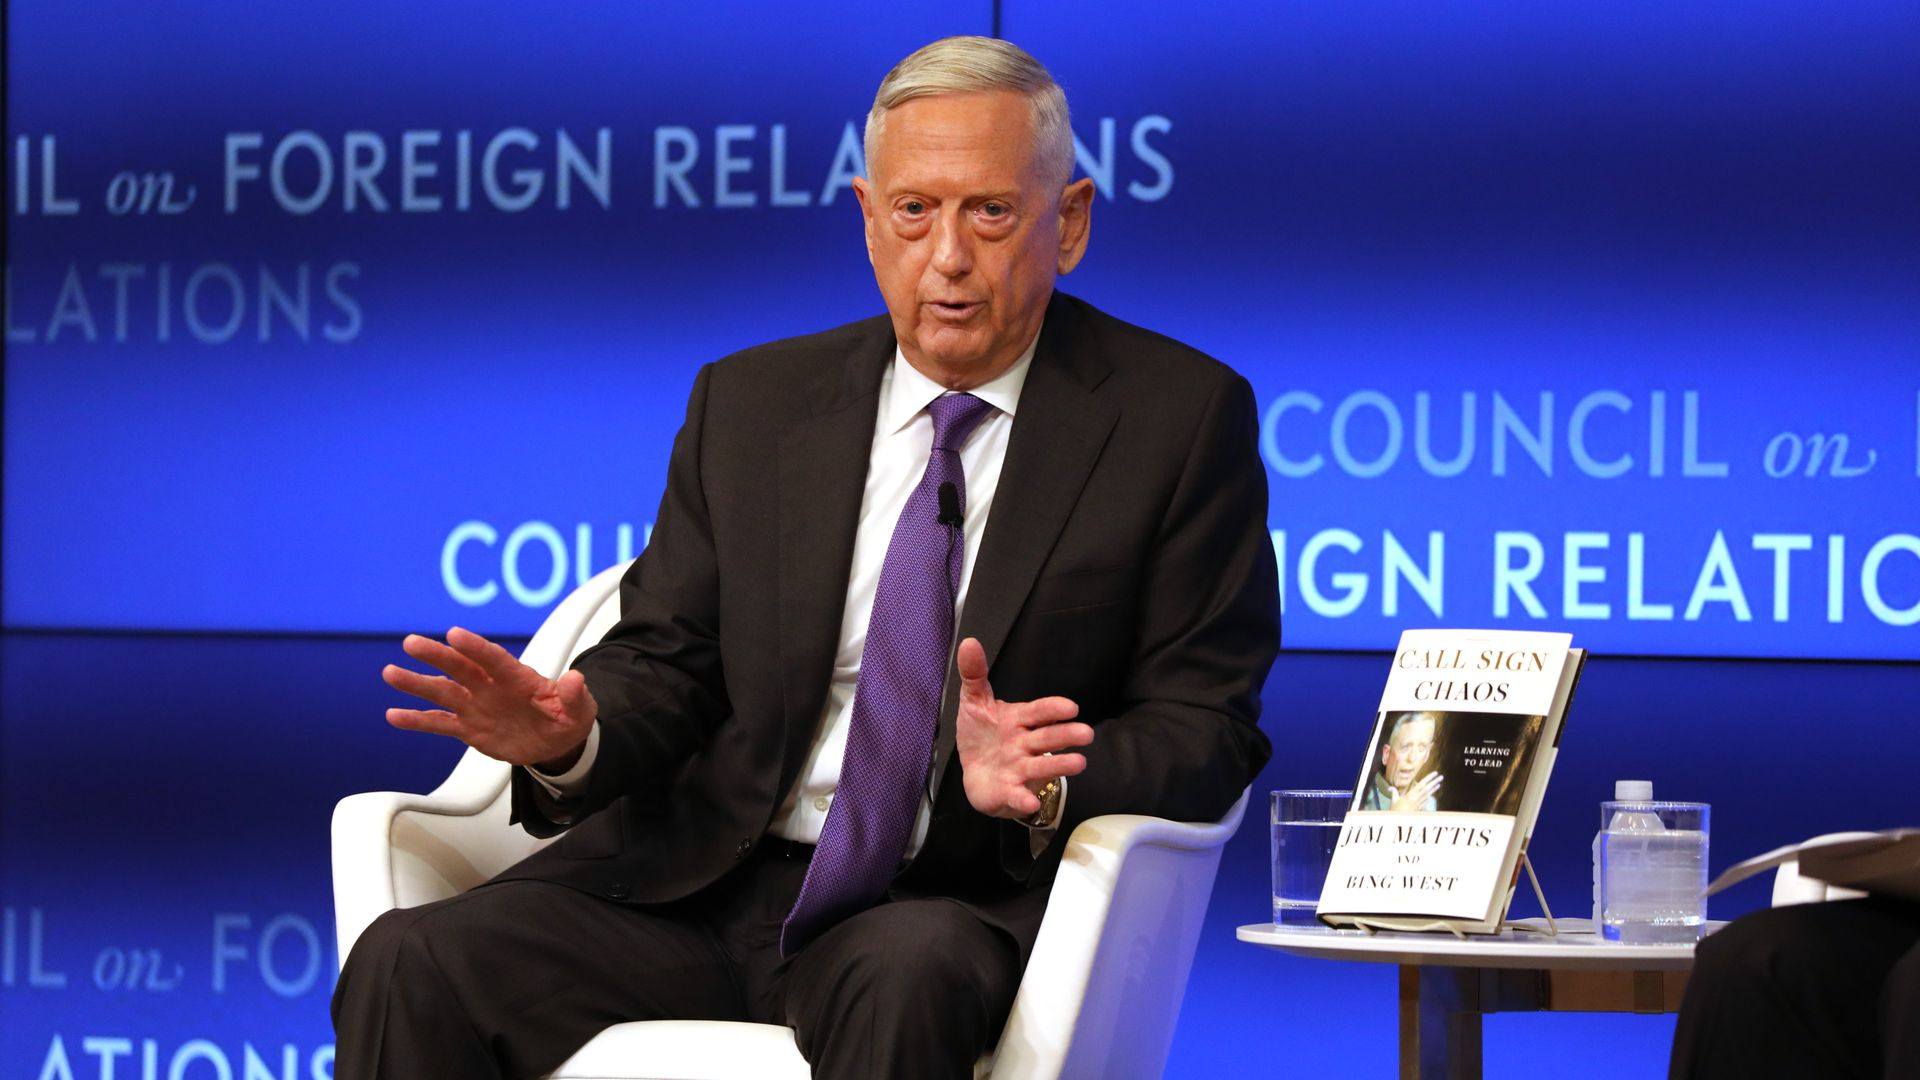 Former Defense Secretary General James Mattis speaks with Richard Haass at The Council on Foreign Relations on September 03, 2019 in New York City.